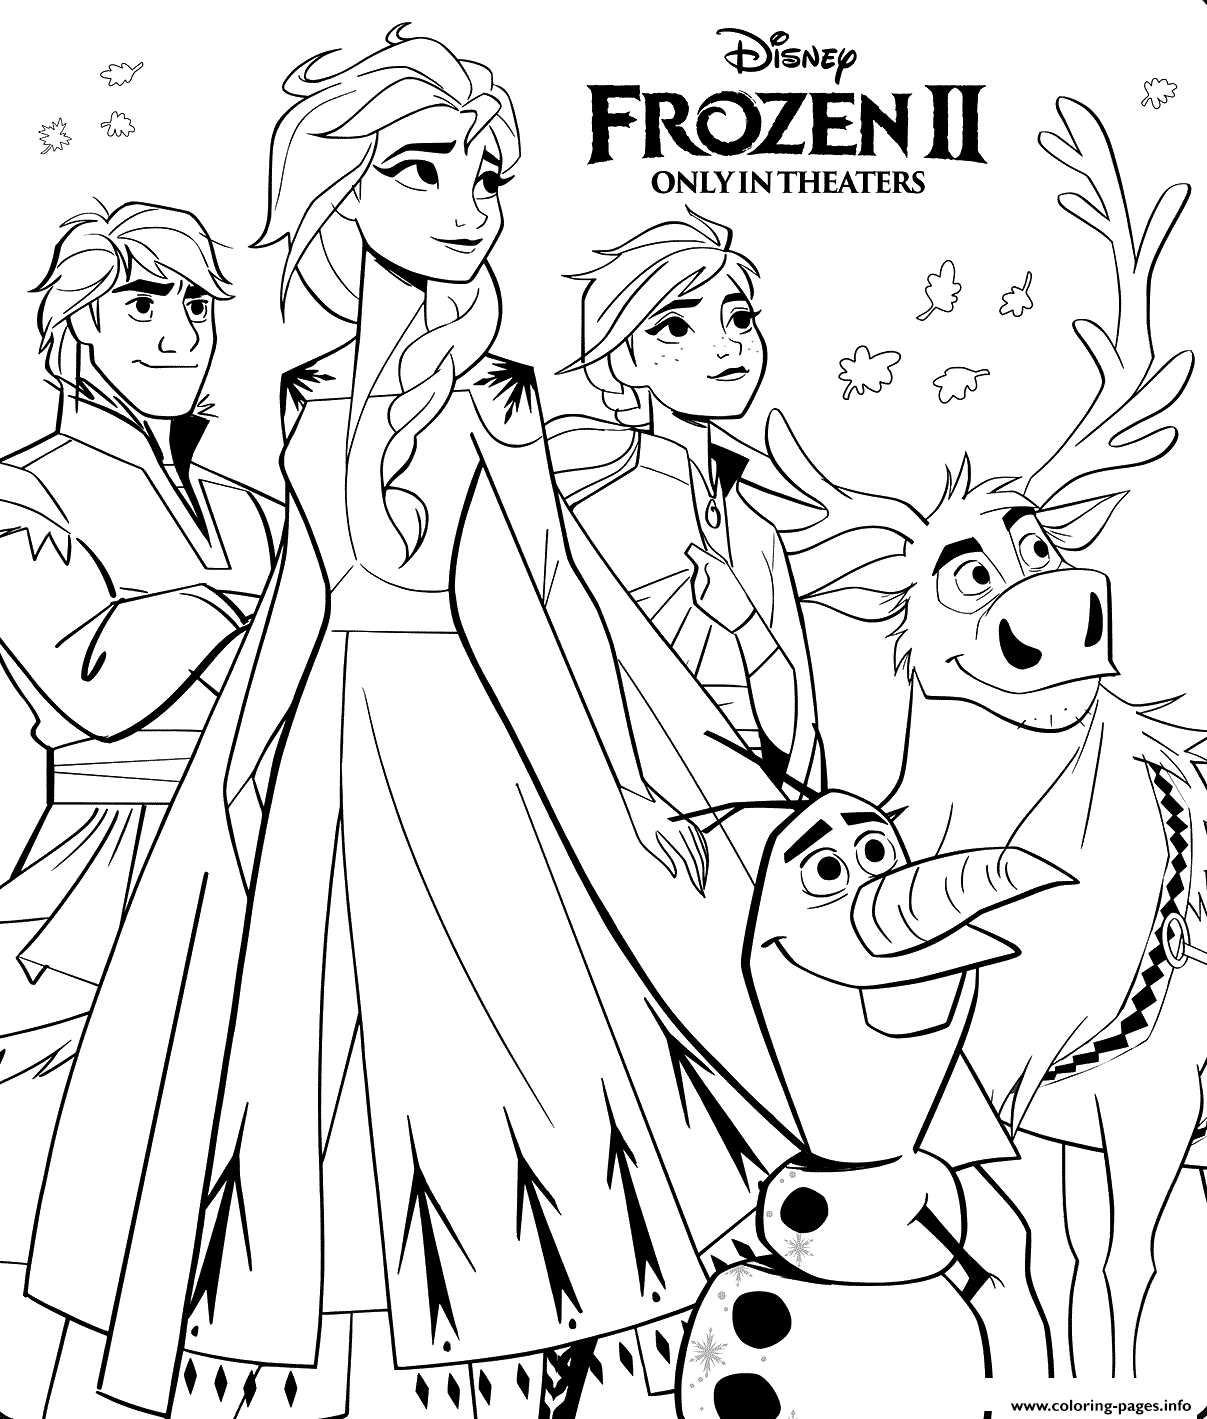 frozen 2 coloring pages frozen 2 printable coloring pages for kids coloring frozen 2 pages